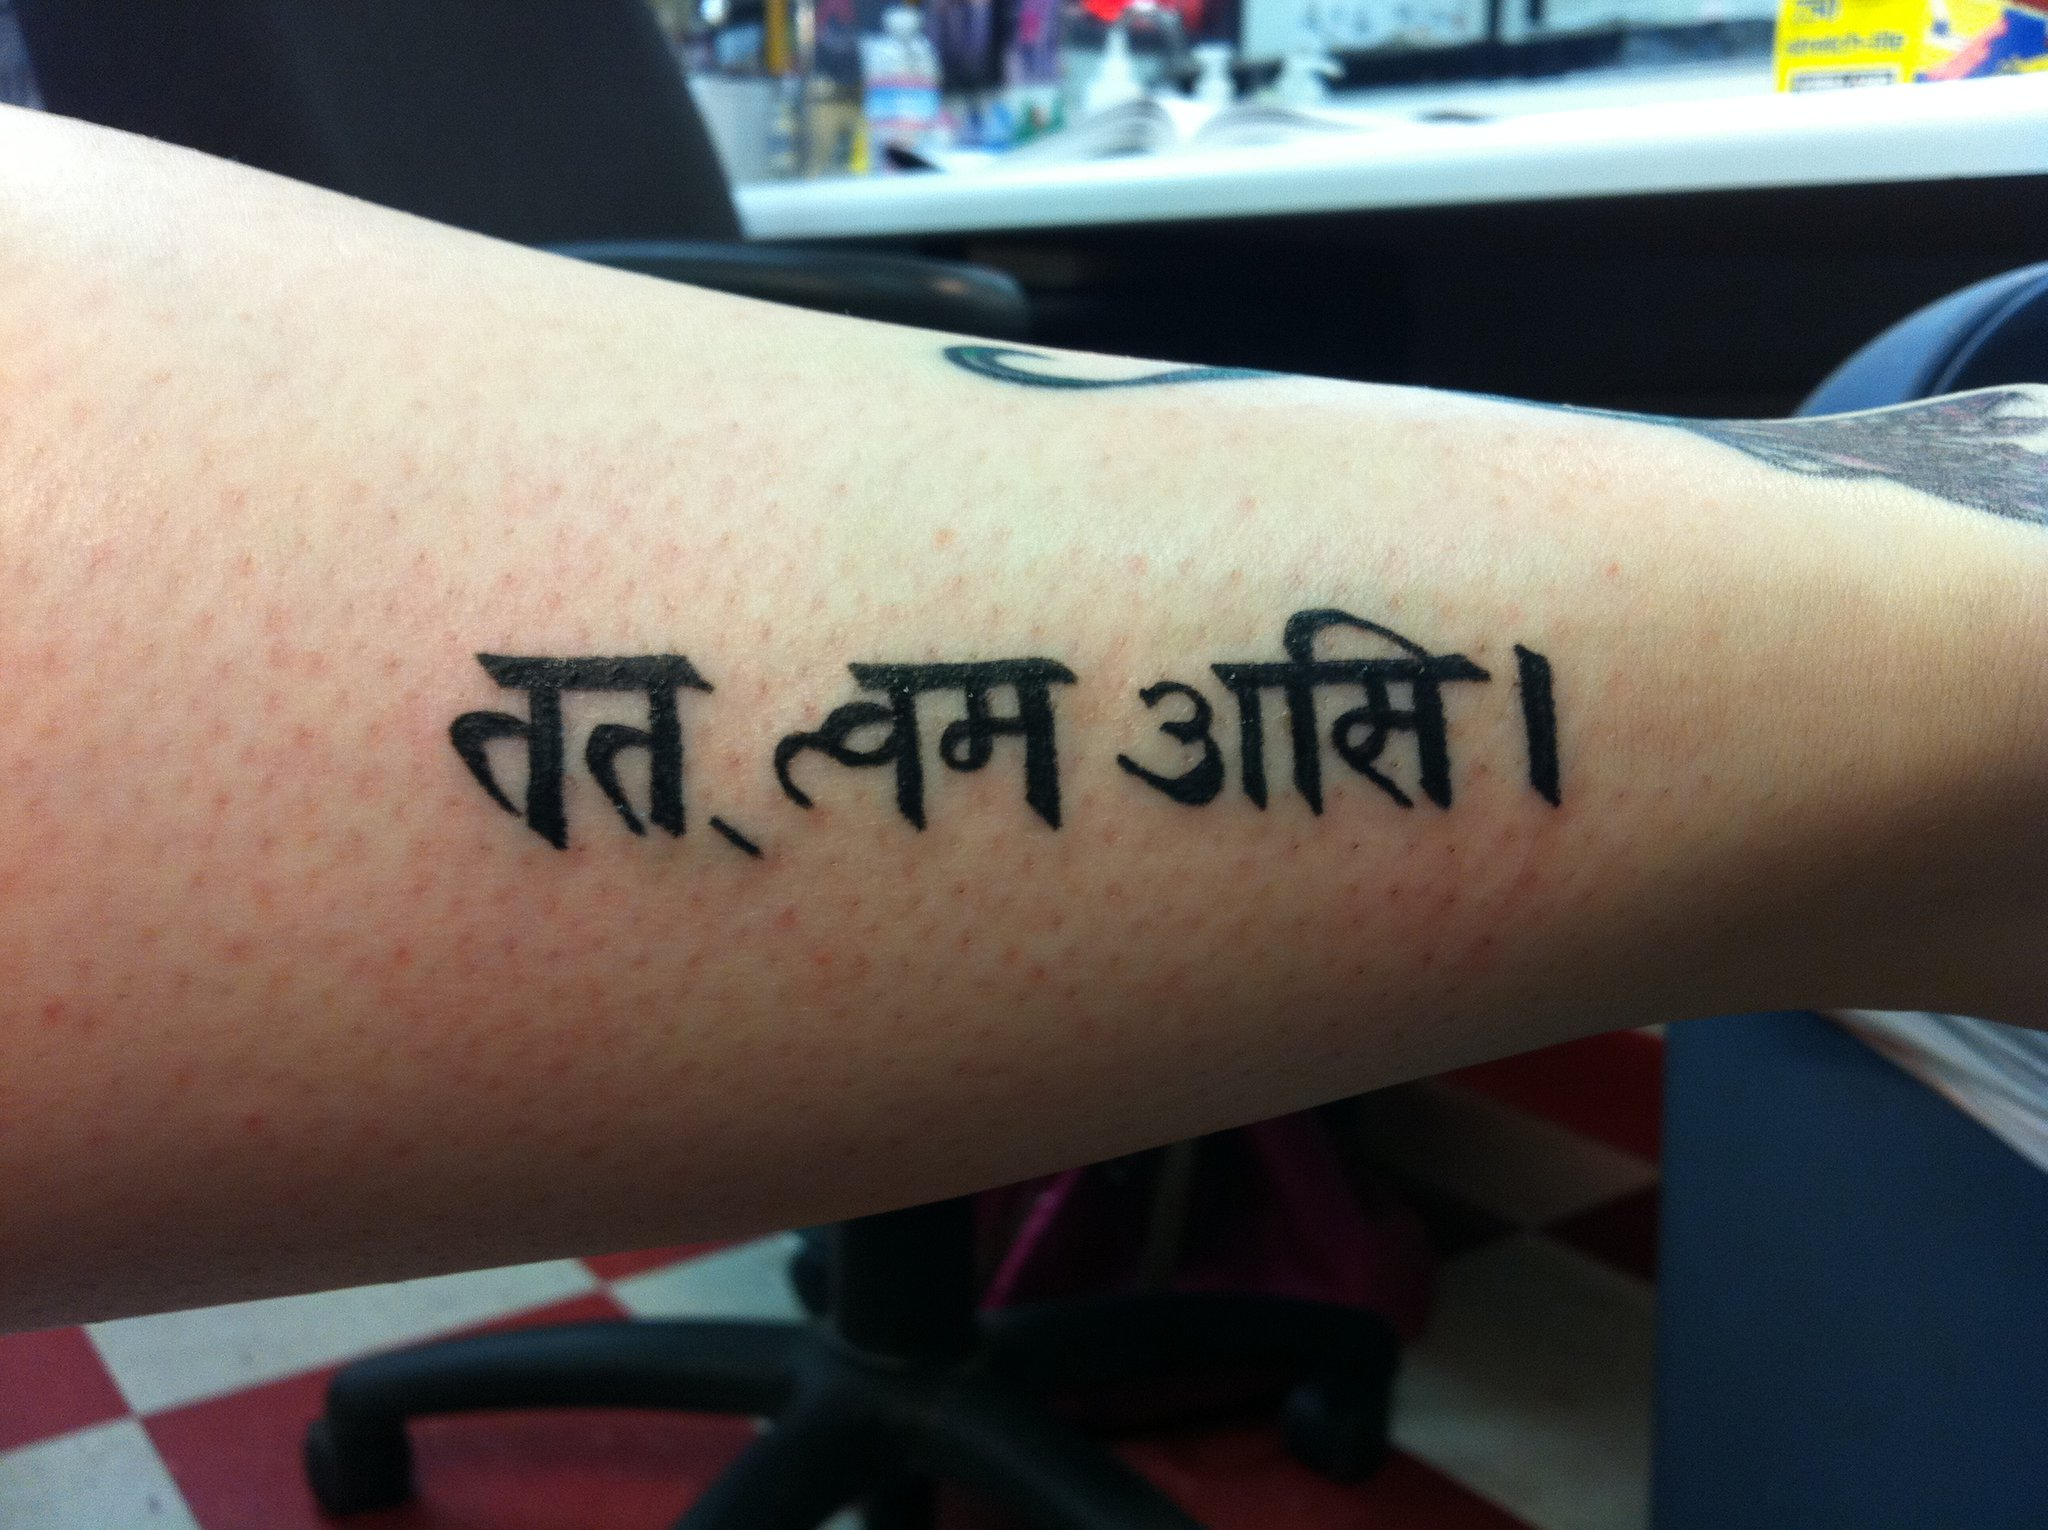 Sanskrit Tattoos Designs Ideas And Meaning Tattoos For You Ideas And Designs